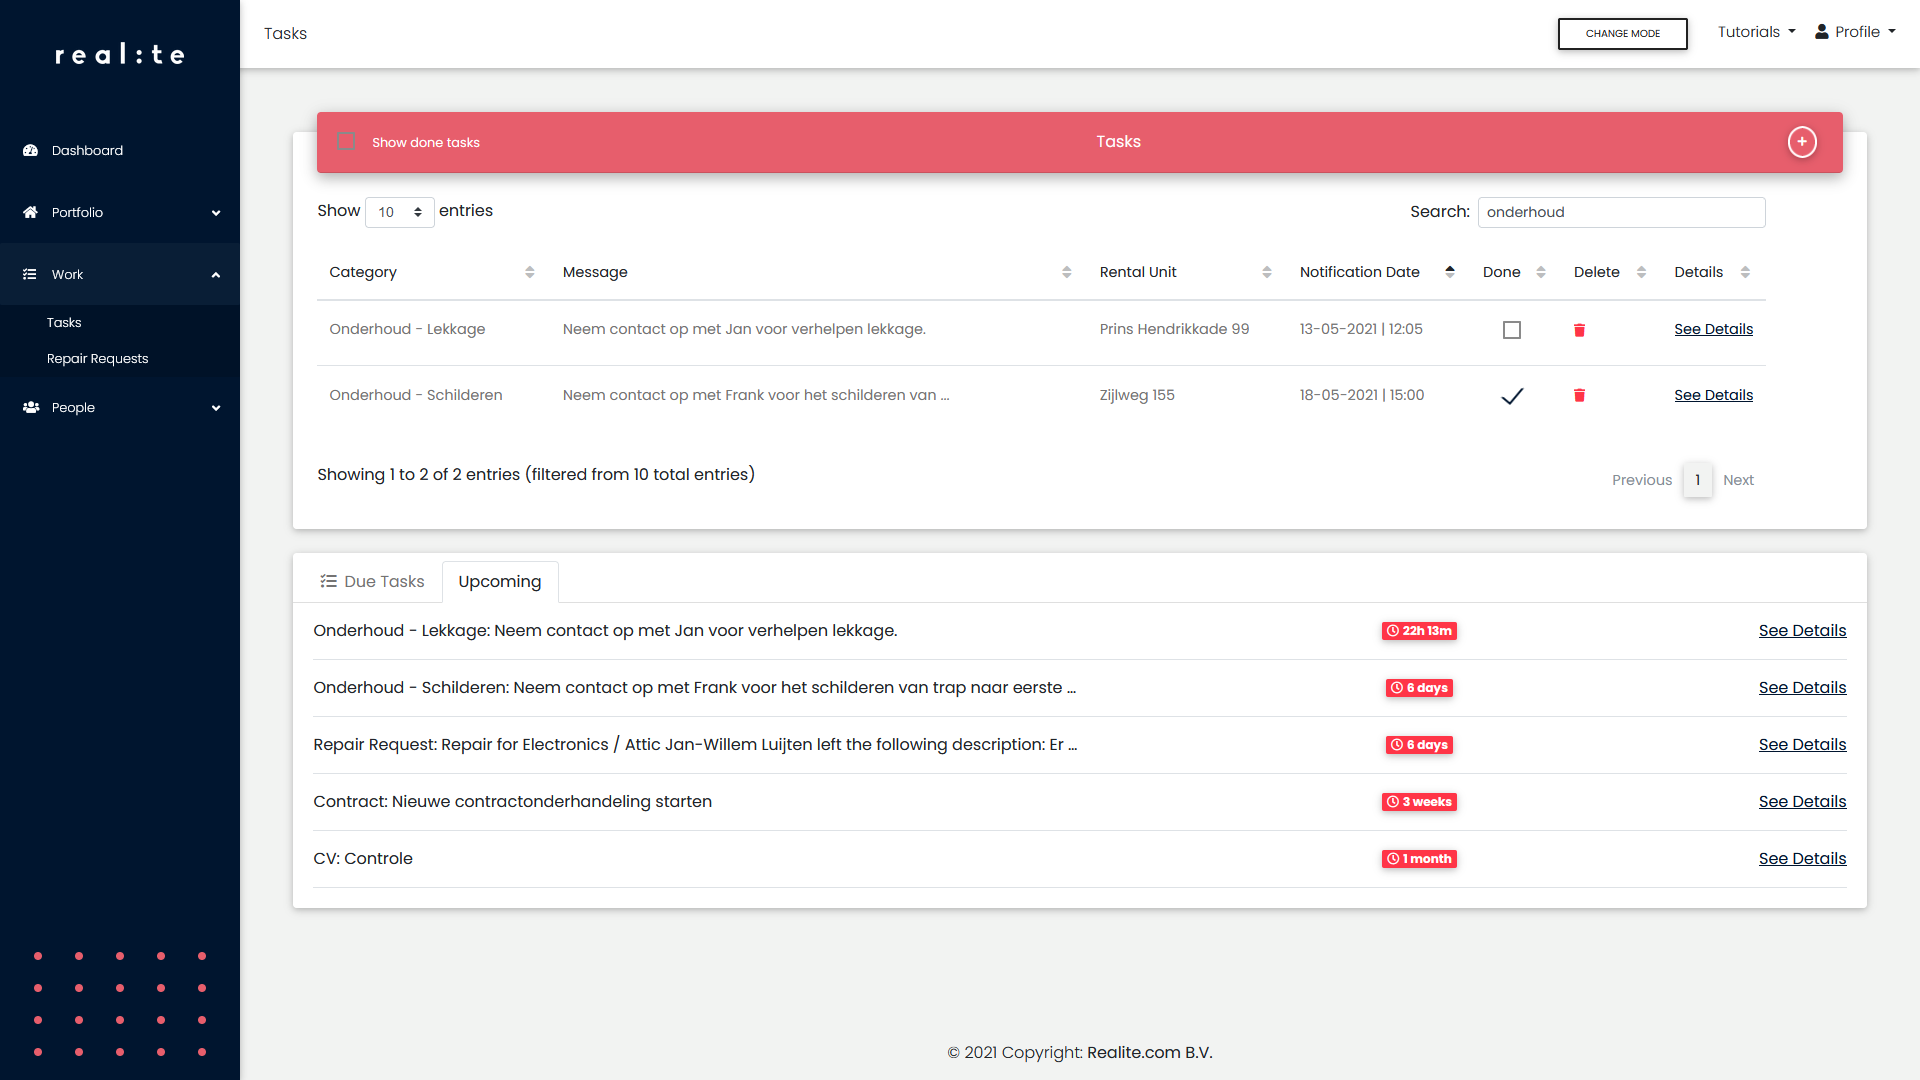 Realite page showing an overview of tasks